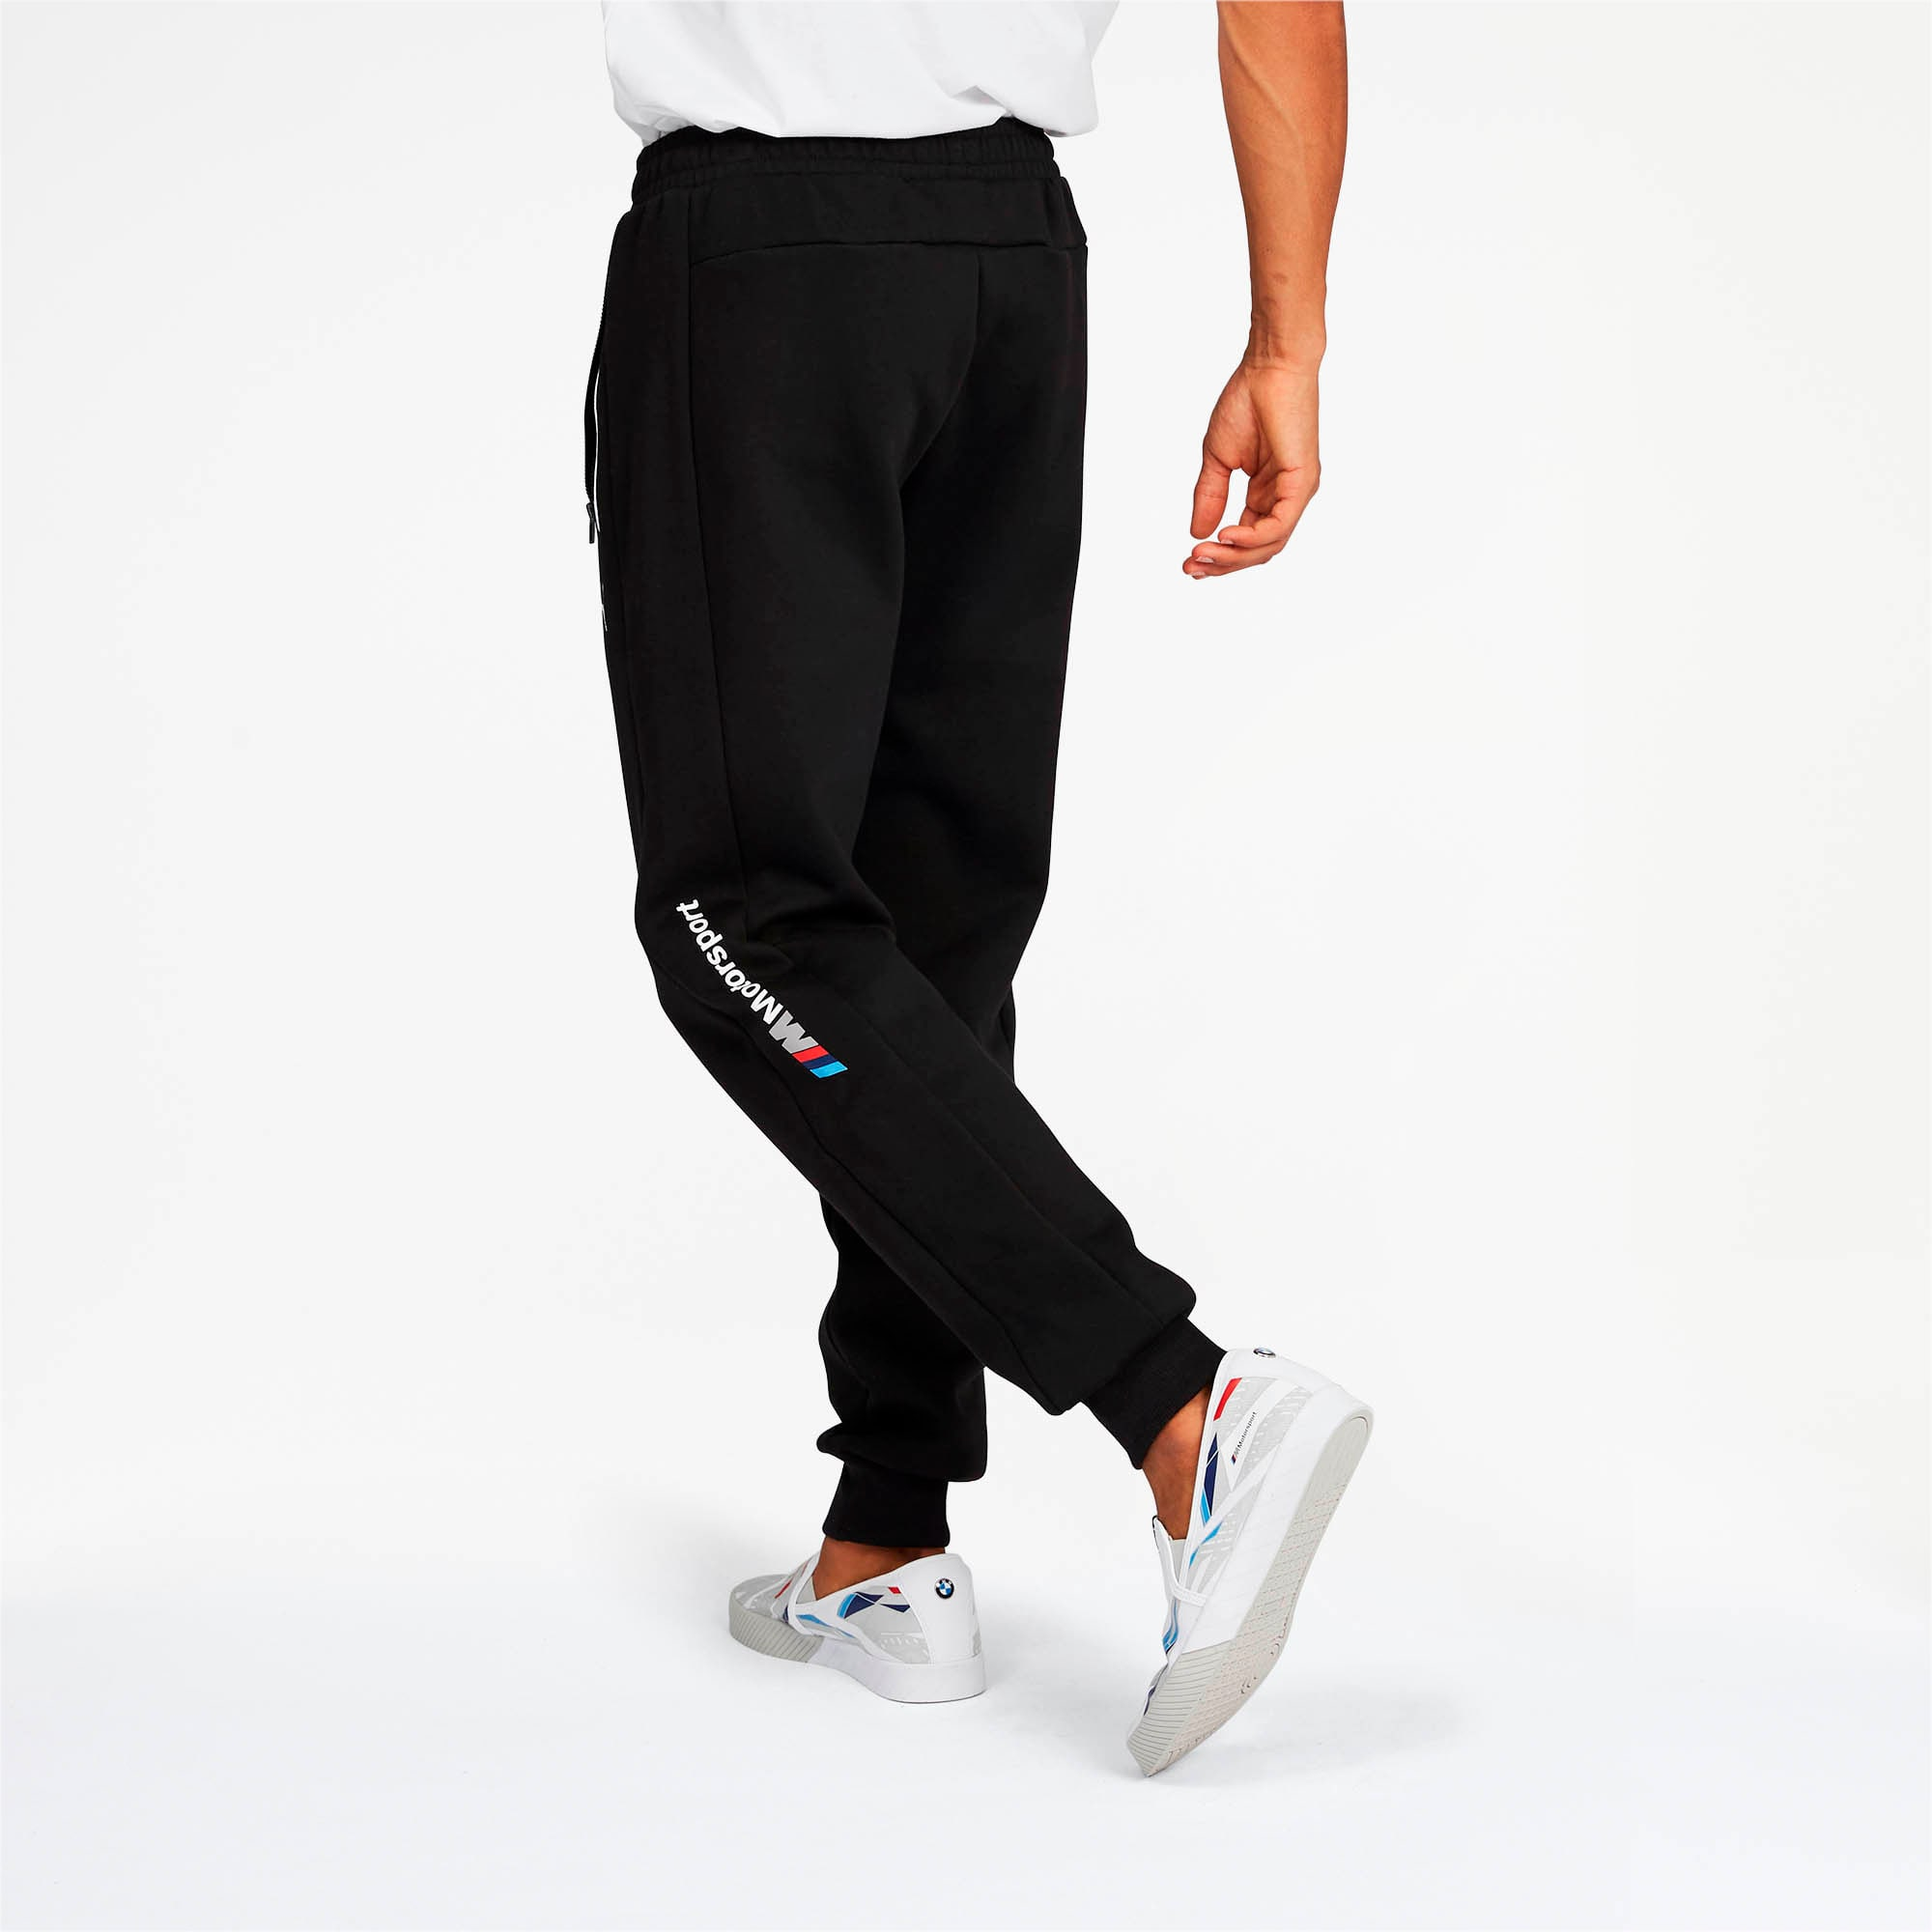 Thumbnail 2 of BMW M Motorsport Men's Sweatpants, Puma Black, medium